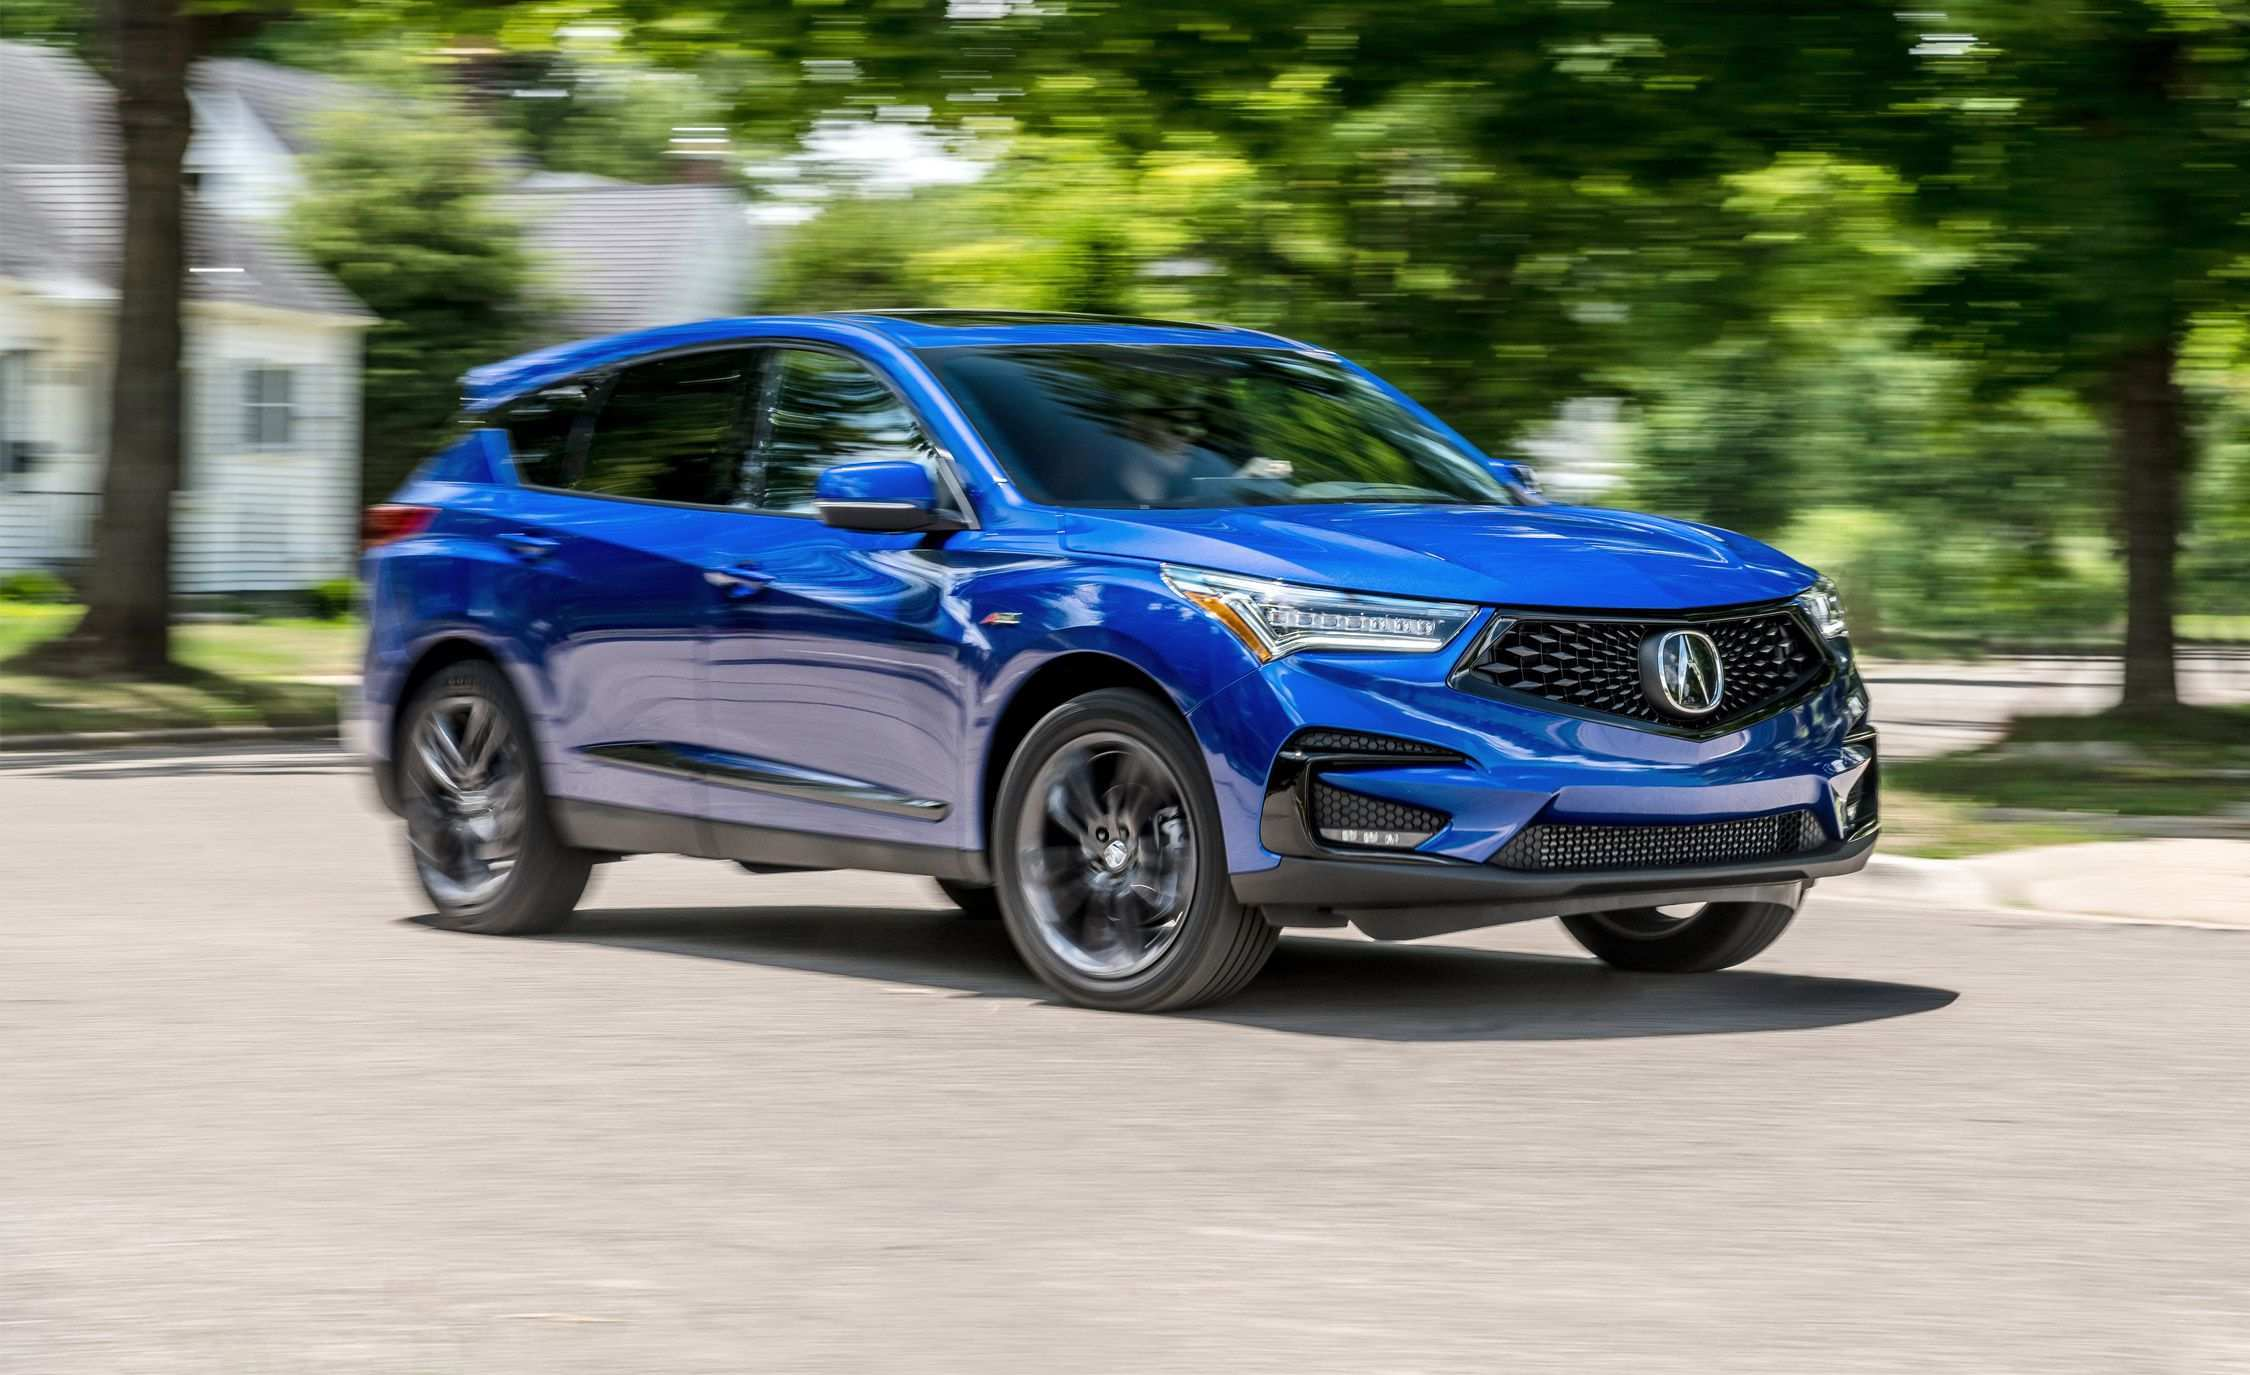 67 New 2019 Acura Rdx Images Images